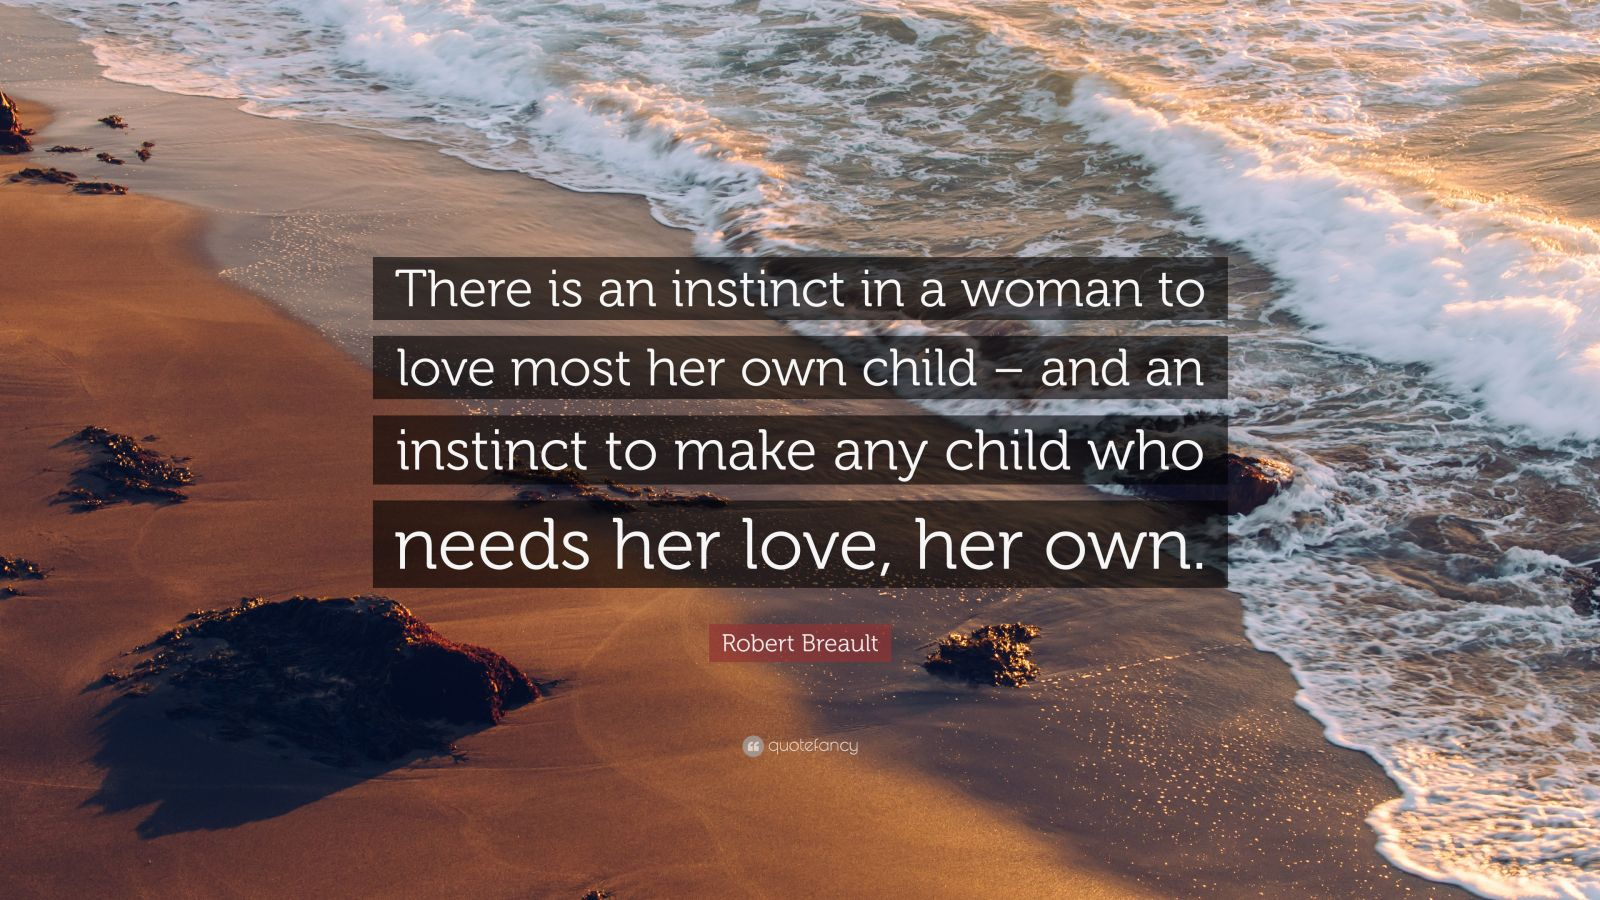 a woman to her lover essay A woman who submits herself to her husband is a woman that understands and is yielding to the government that god has established in the home (ephesians 5:22-32 ephesians 5:22-32 22 wives, submit yourselves to your own husbands, as to the lord.